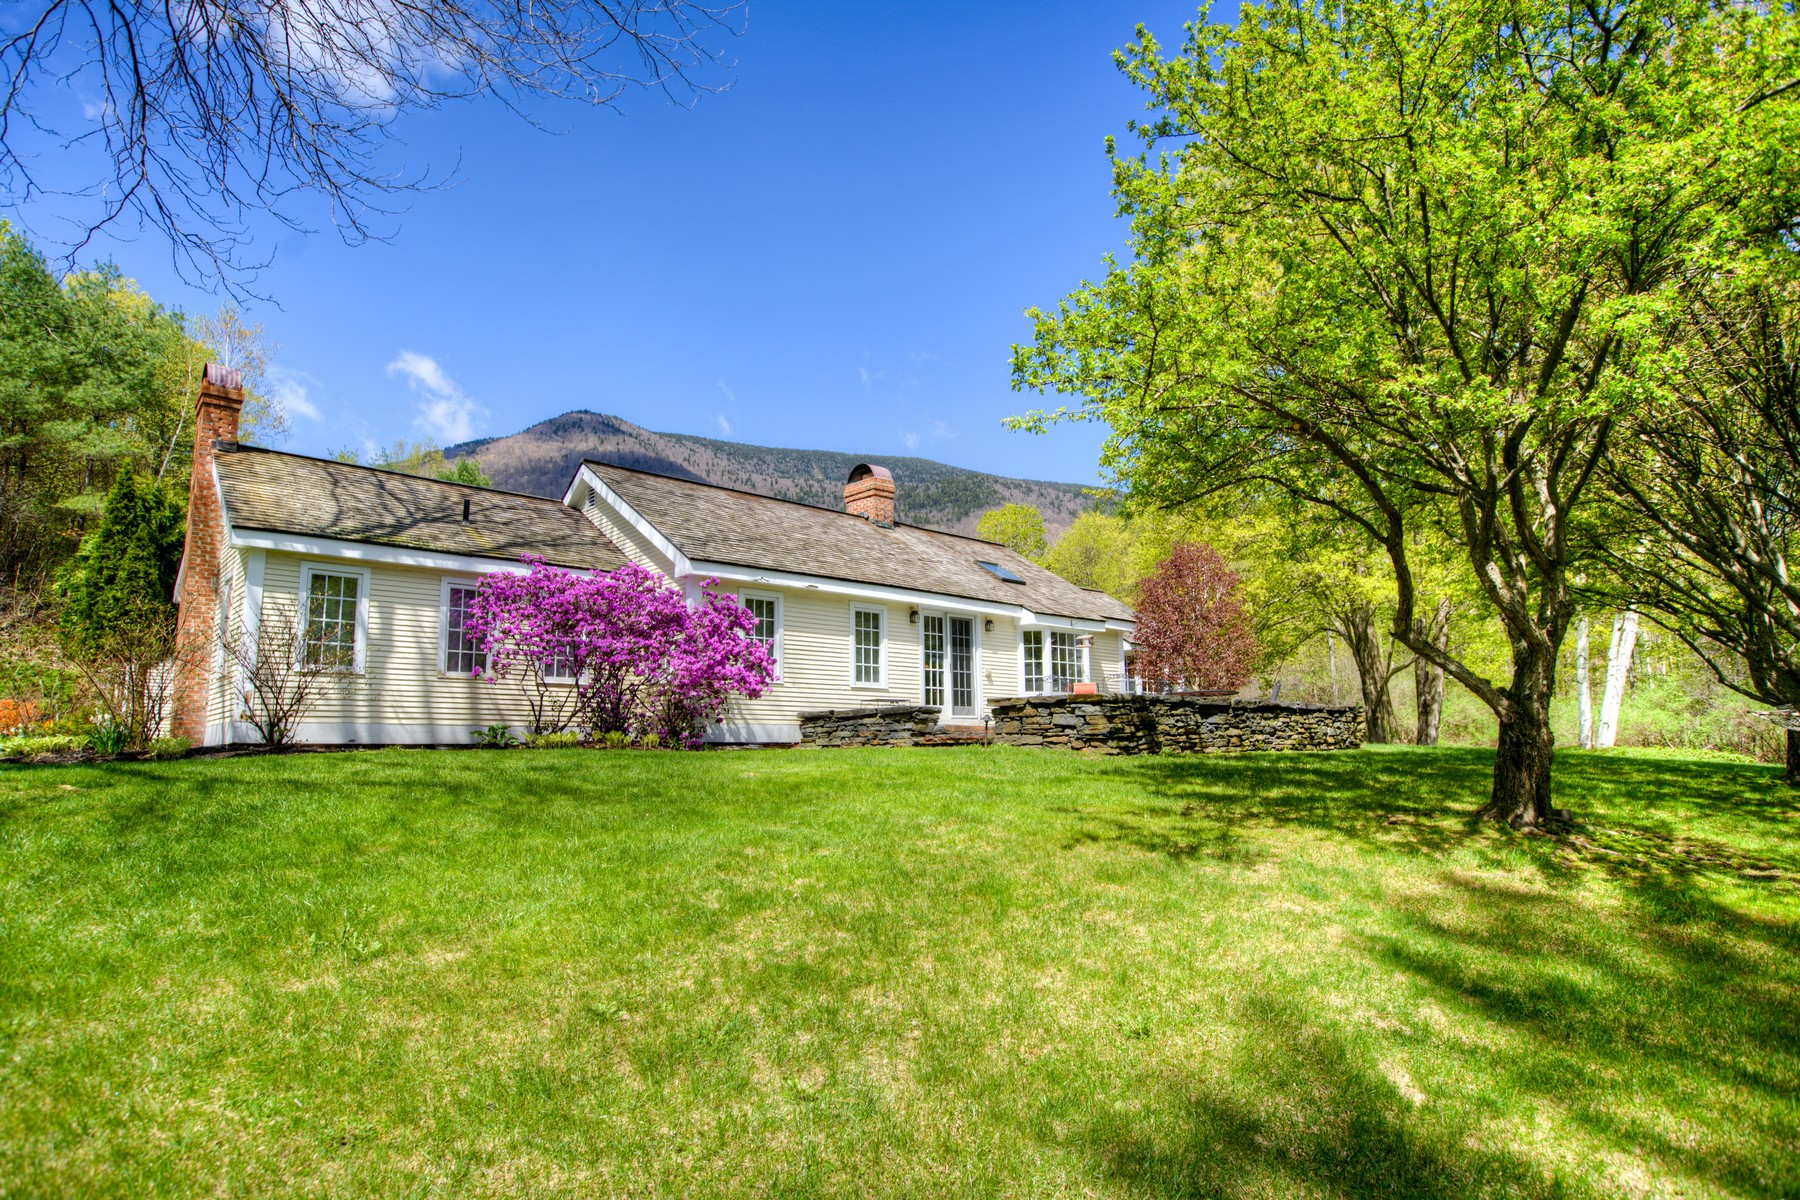 single family homes for Sale at 96 Equinox Pond Road, Manchester 96 Equinox Pond Rd Manchester, Vermont 05255 United States